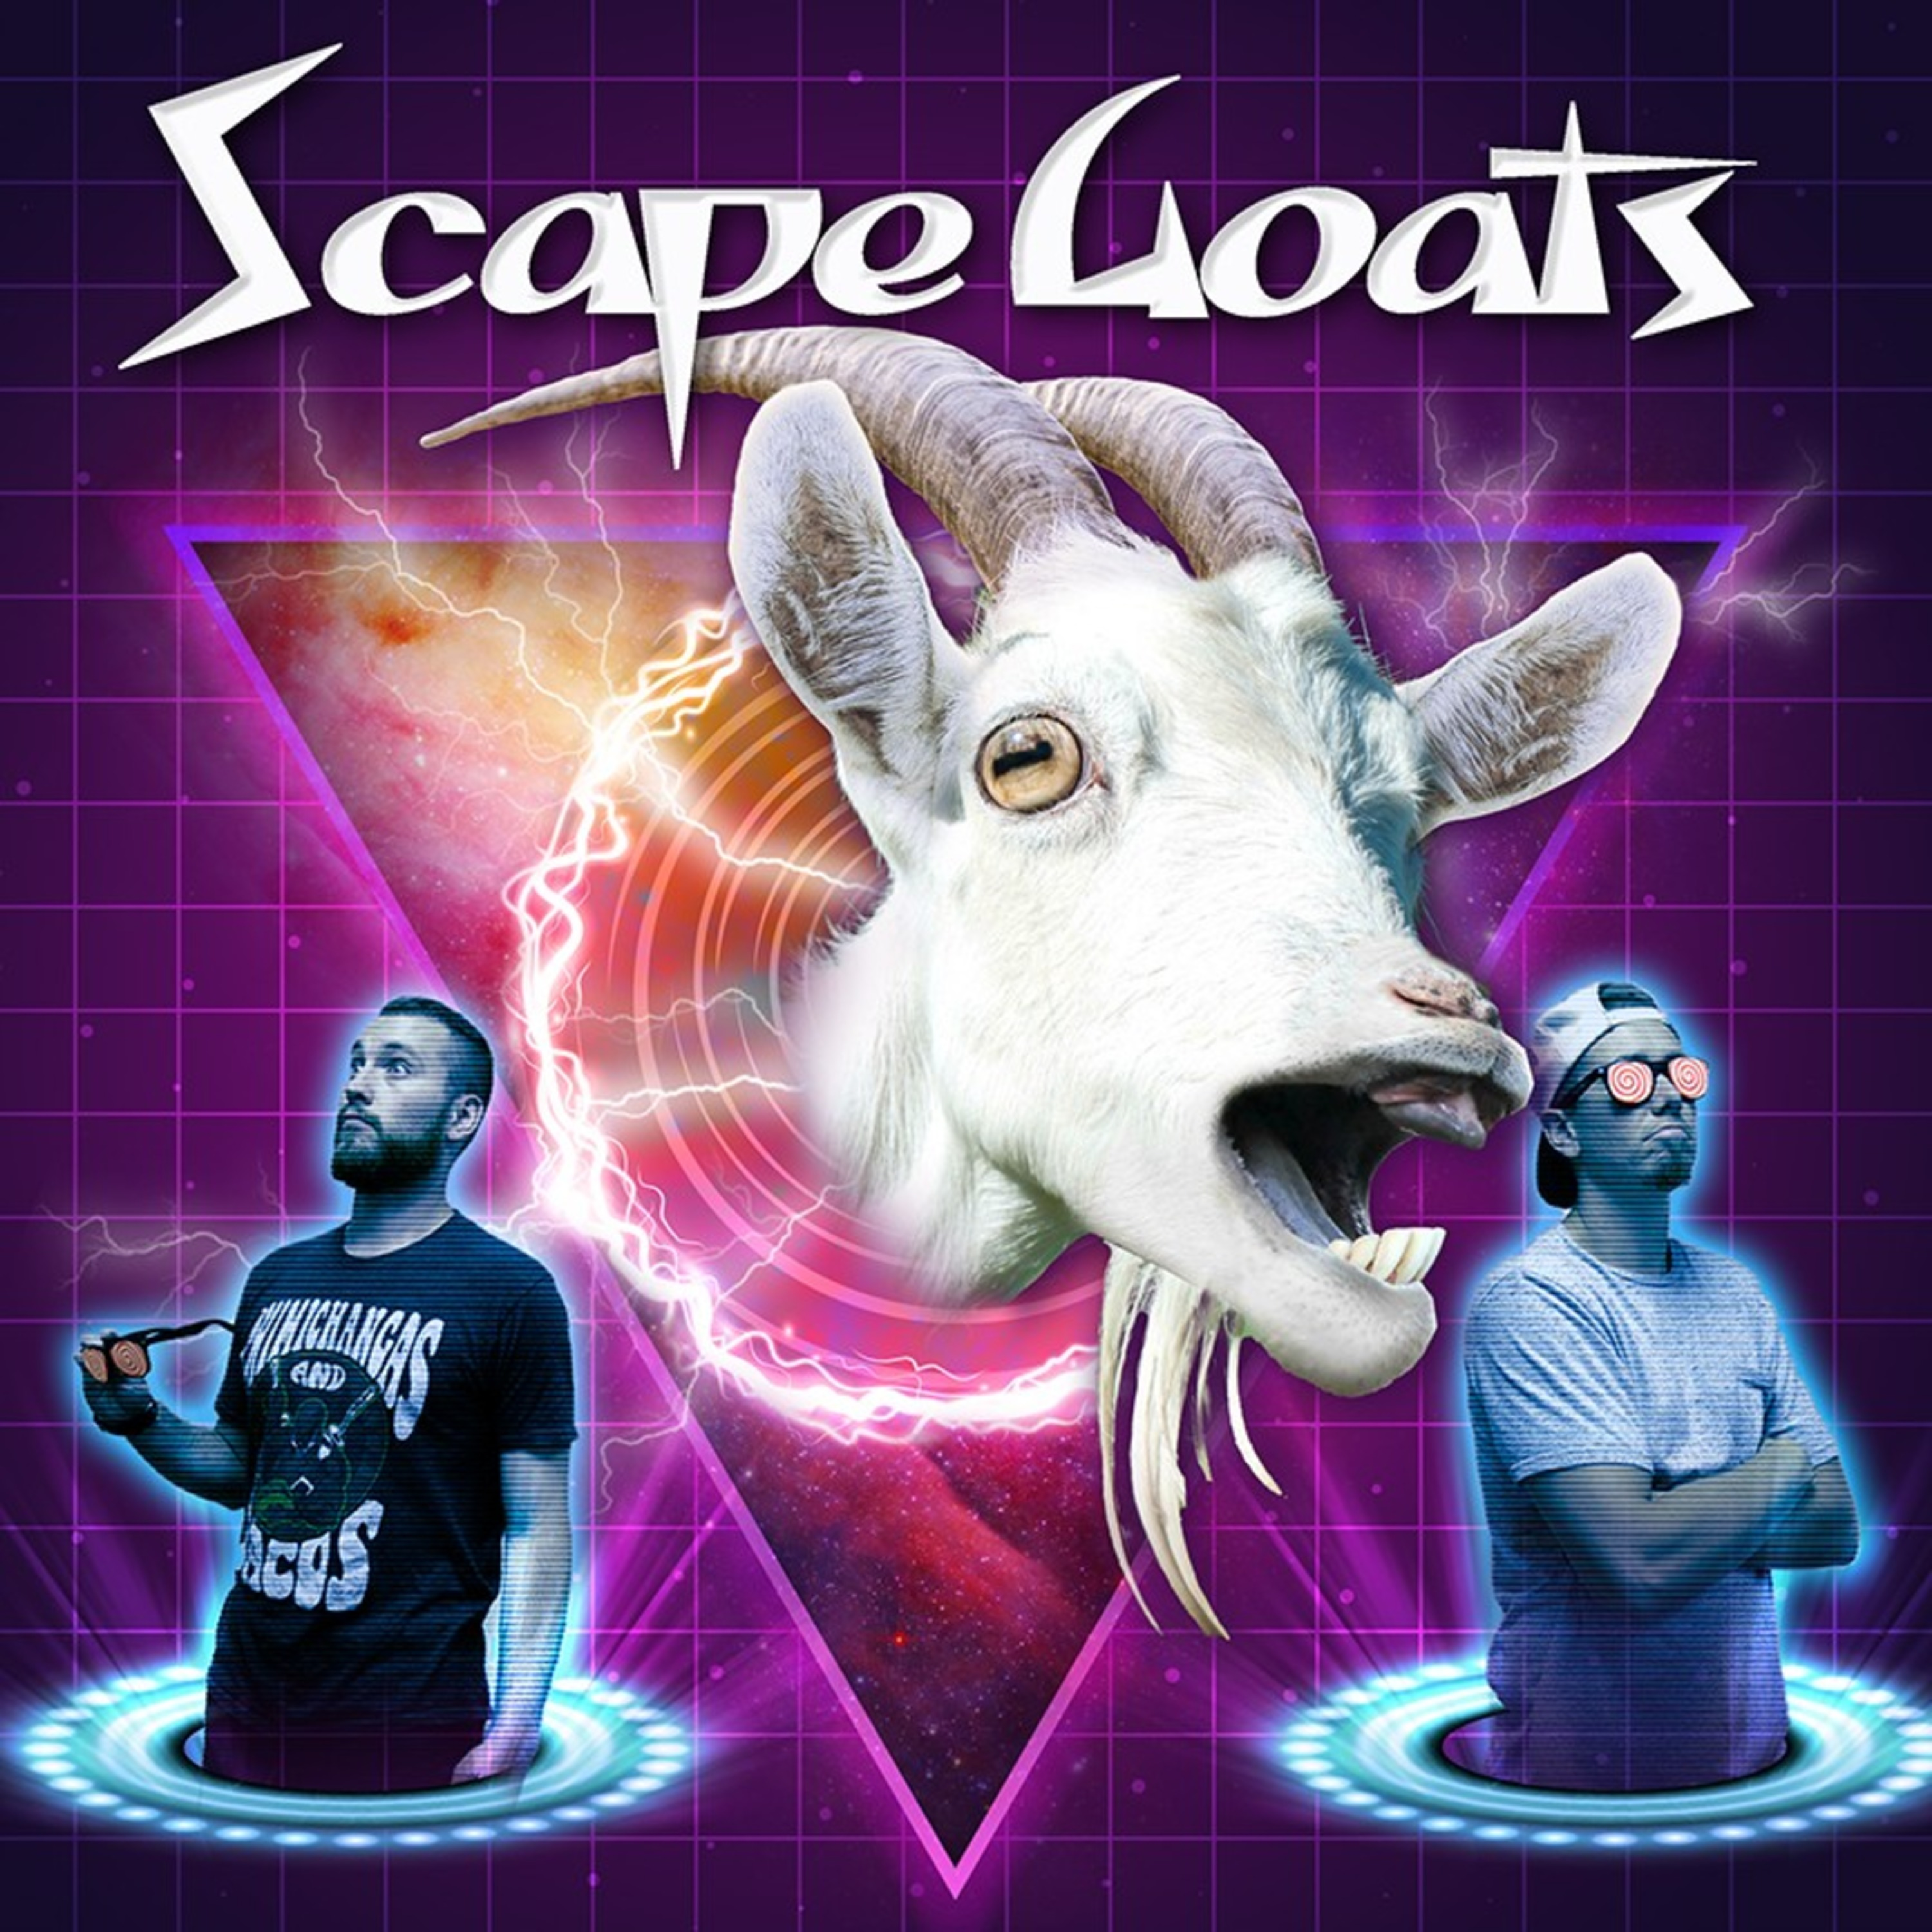 ScapeGoats a Comedy Conspiracy Theory Podcast | Listen Free on Castbox